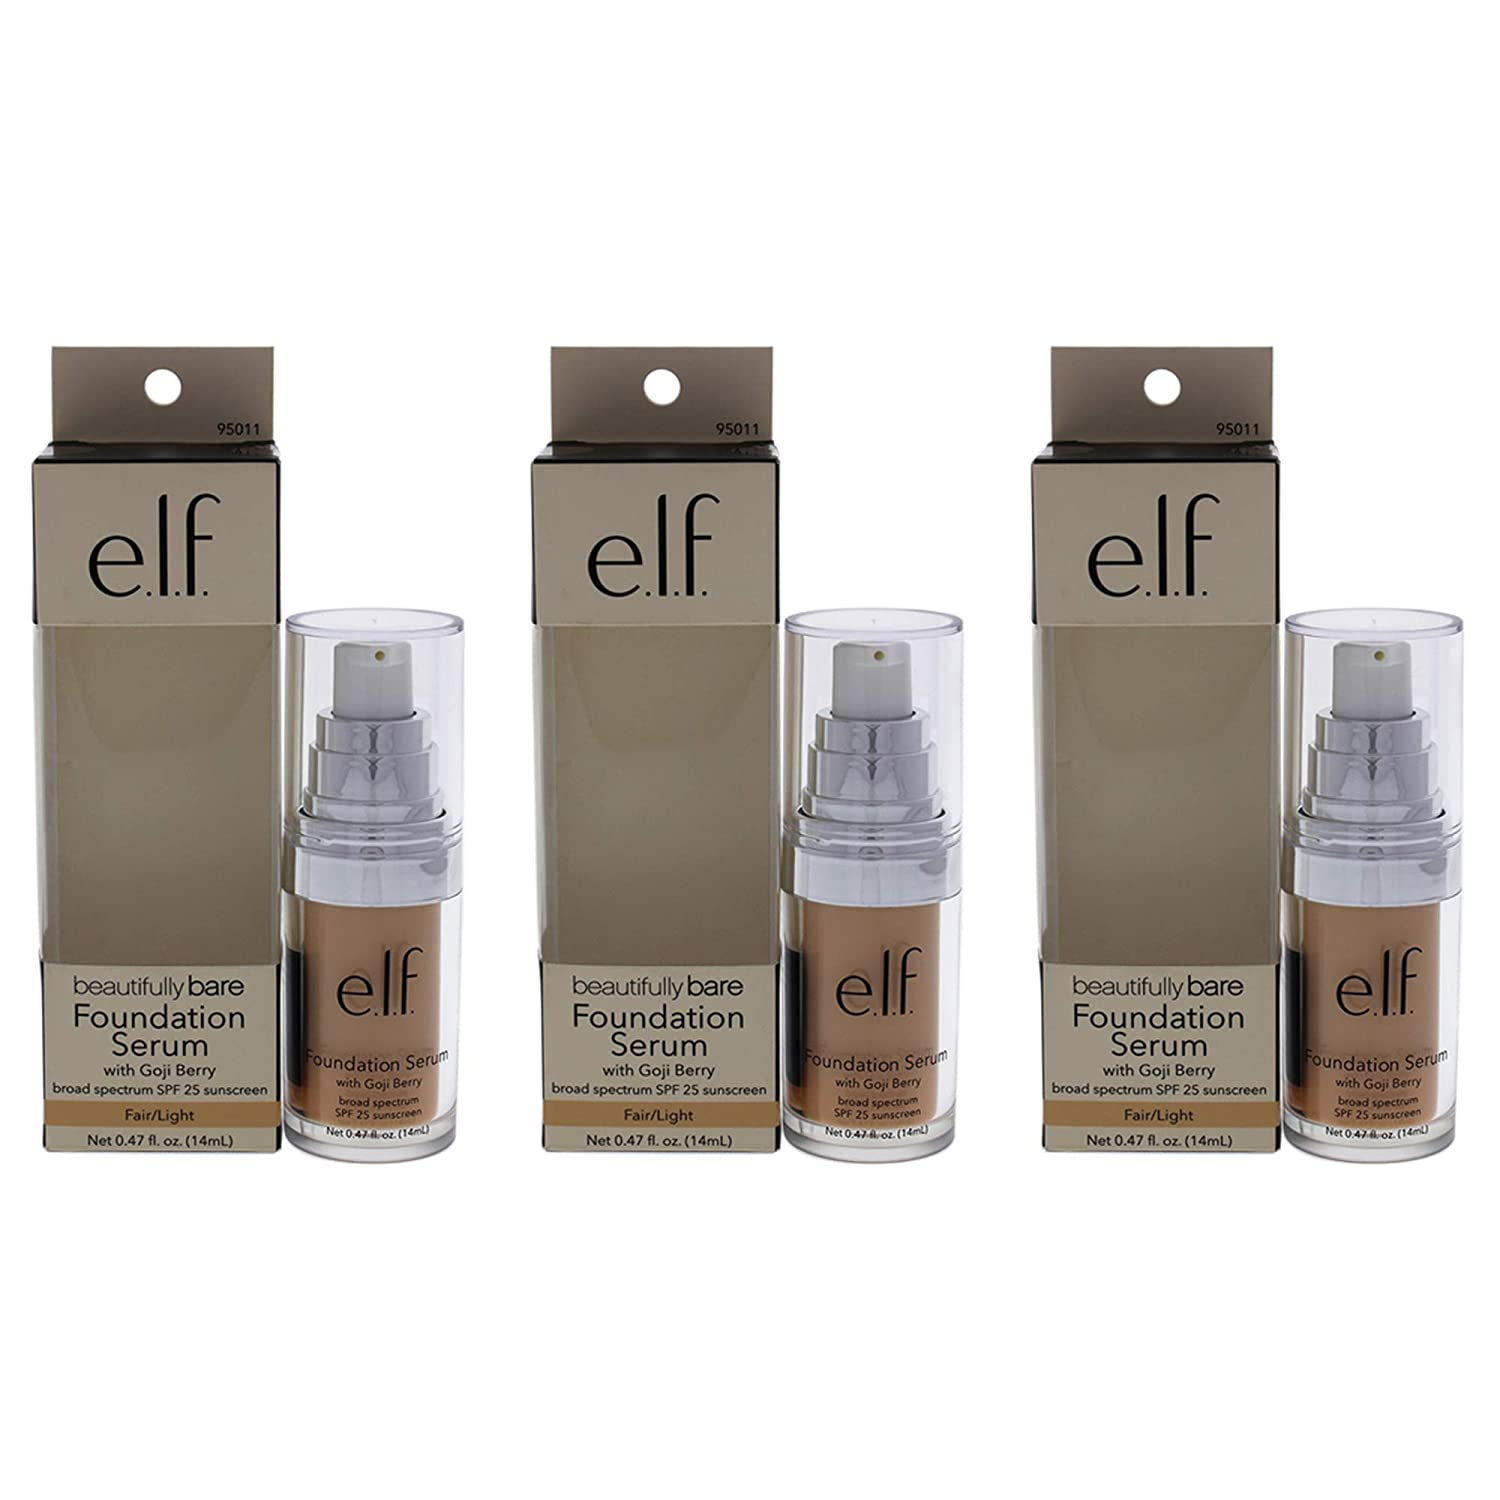 Beautifully Bare Foundation Serum SPF 25 - Fair-light by e.l.f. for Women - 0.47 oz Foundation - (Pack of 3)